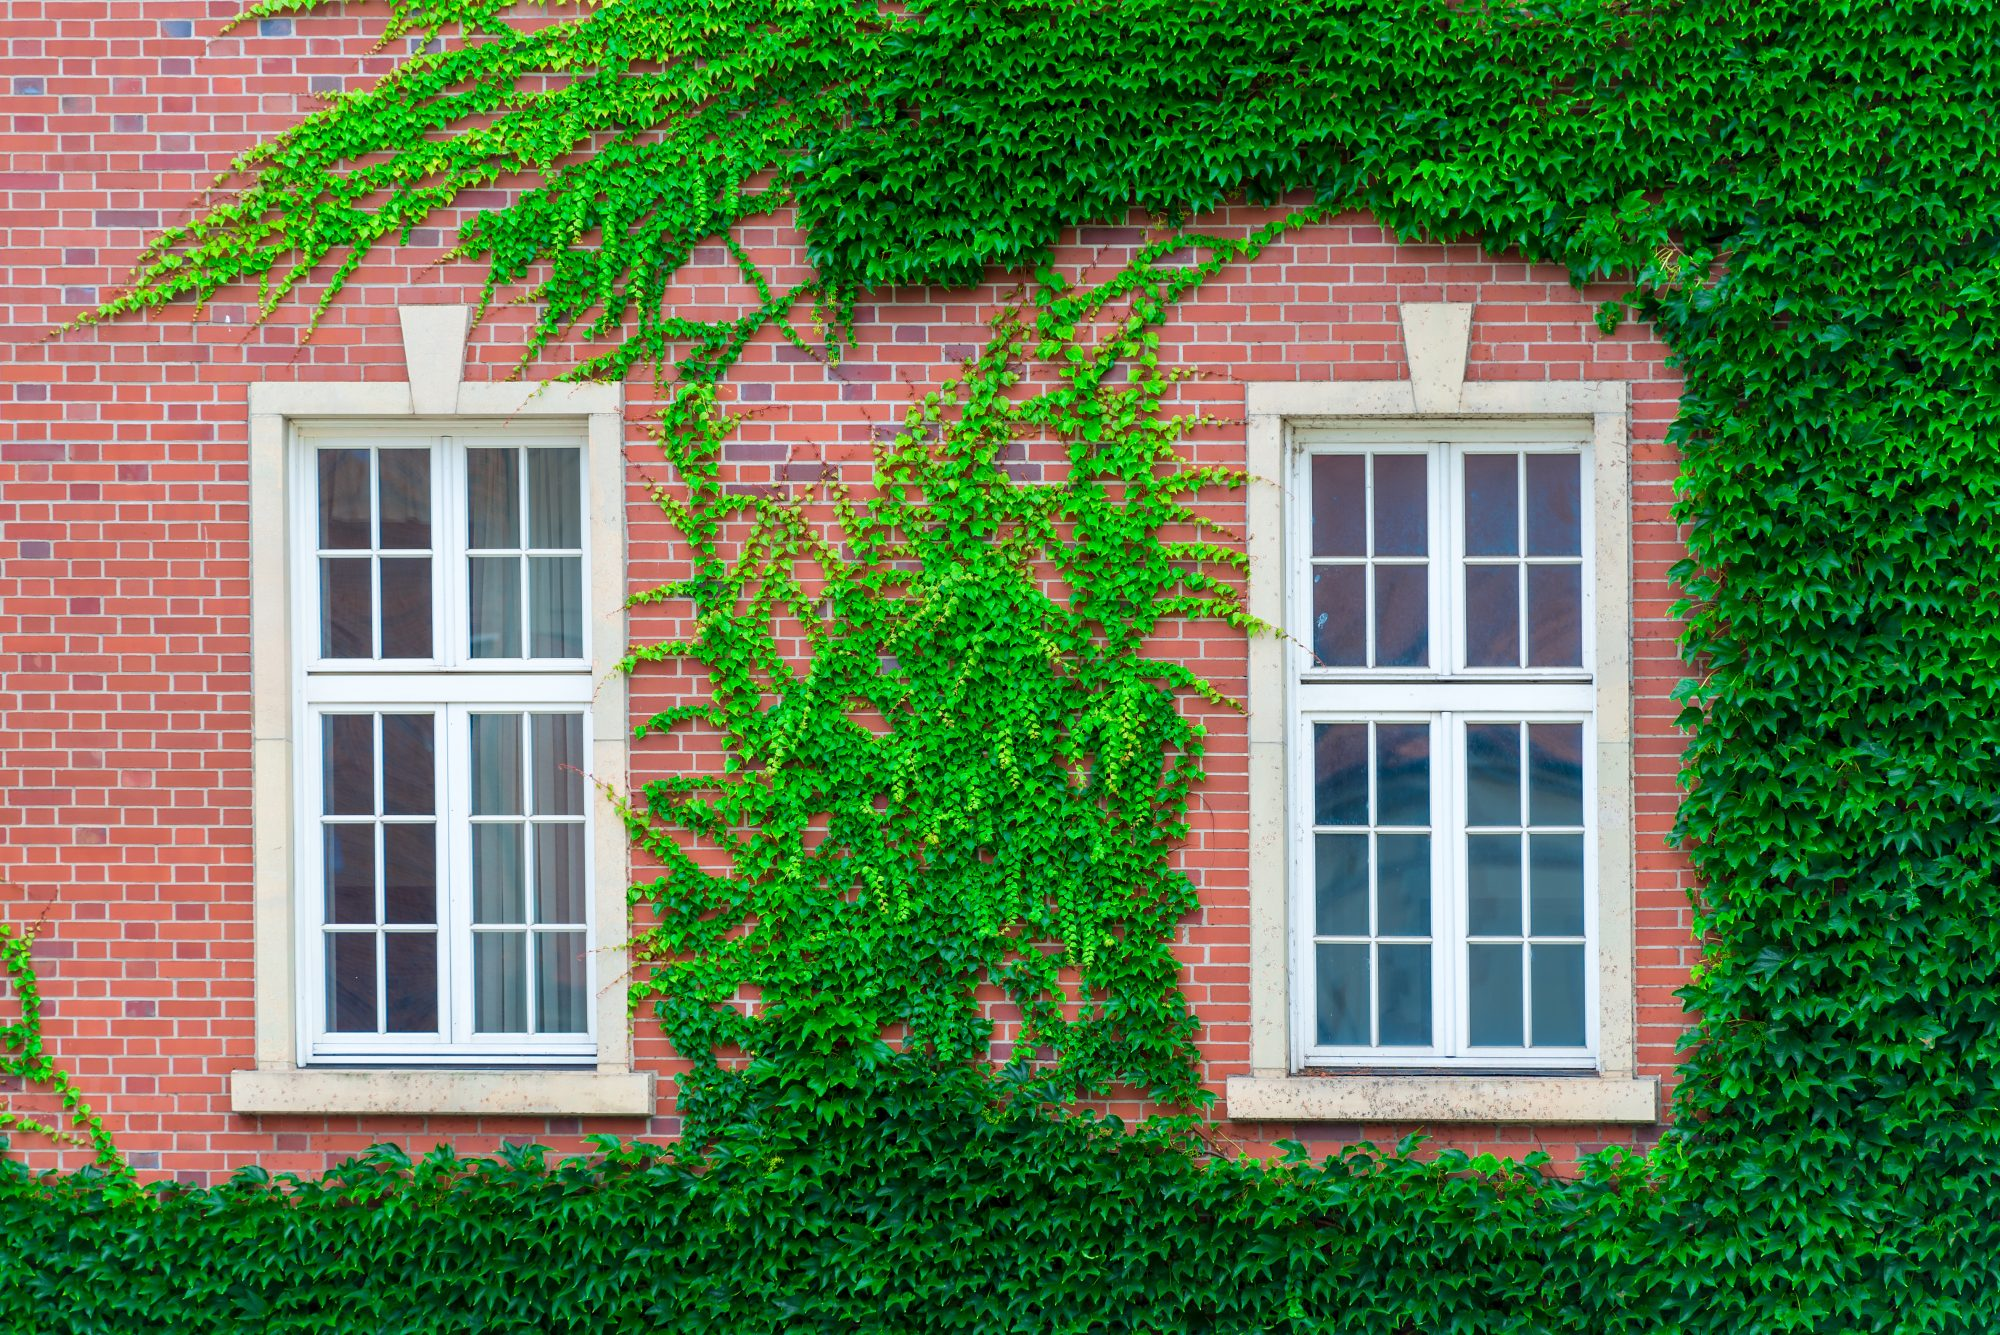 Are Climbing Vines Bad For Your House?